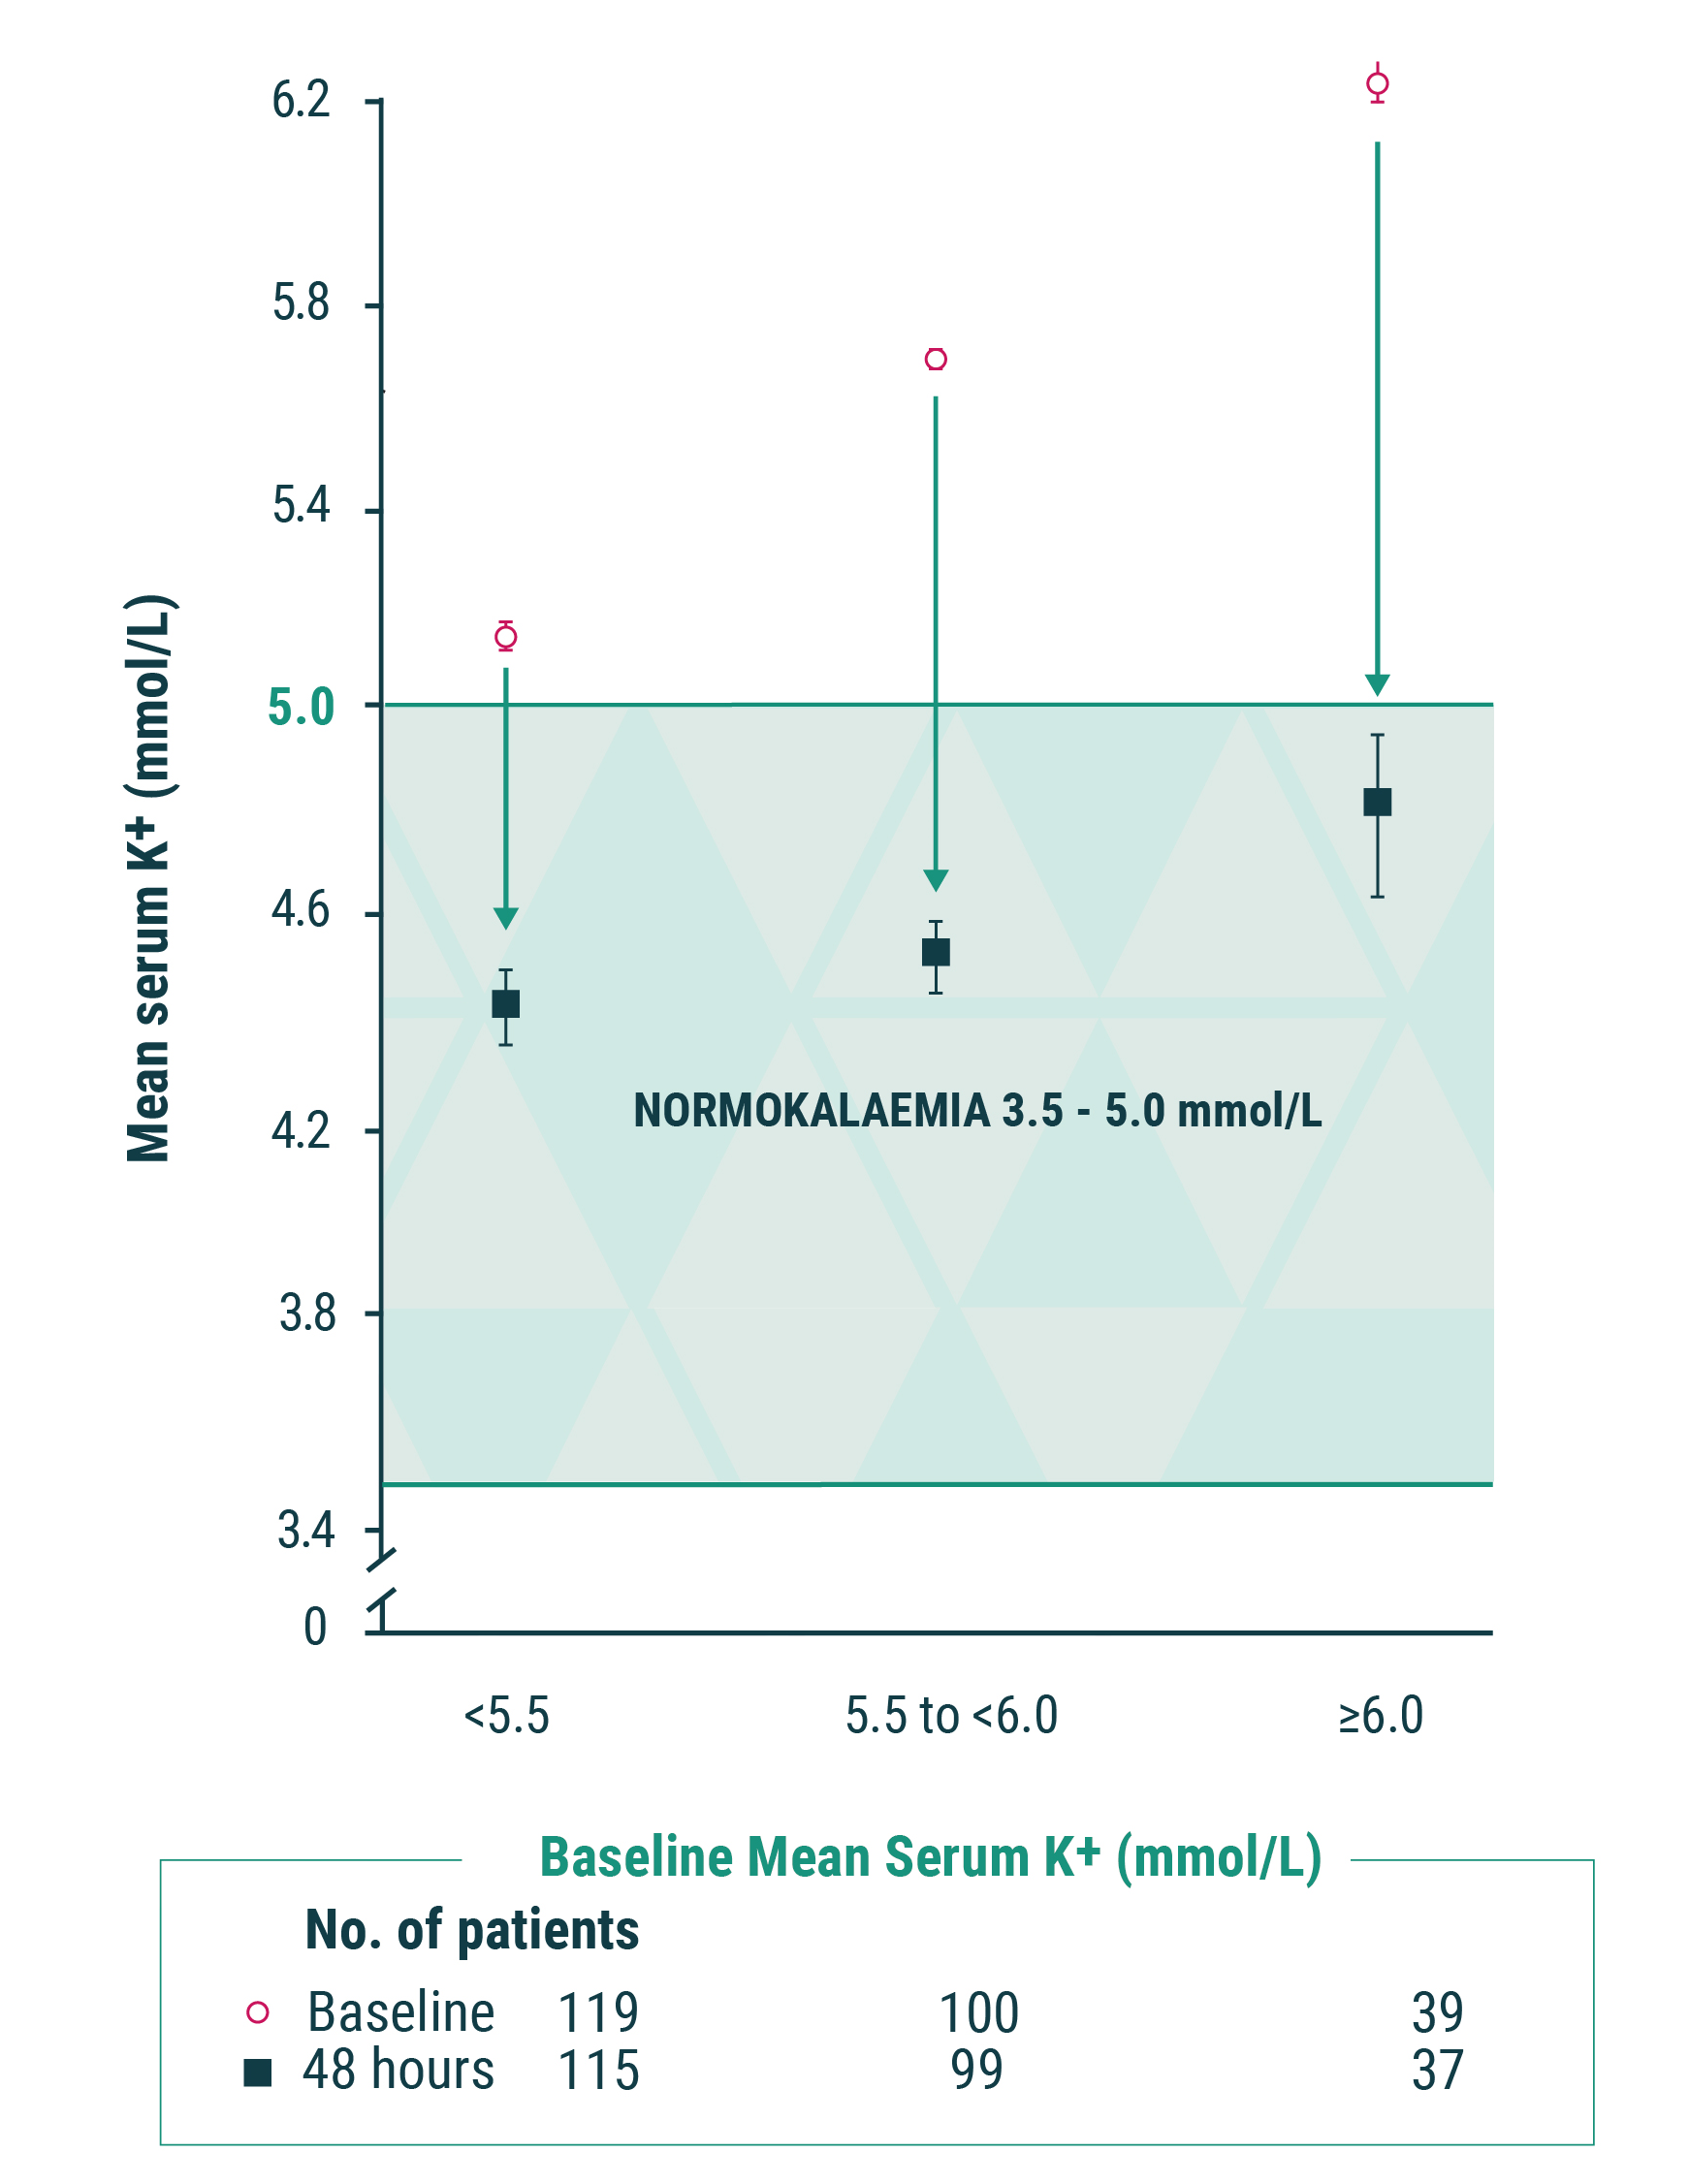 Mean serum K+ levels at 0 and 38 hours across baseline K+ levels